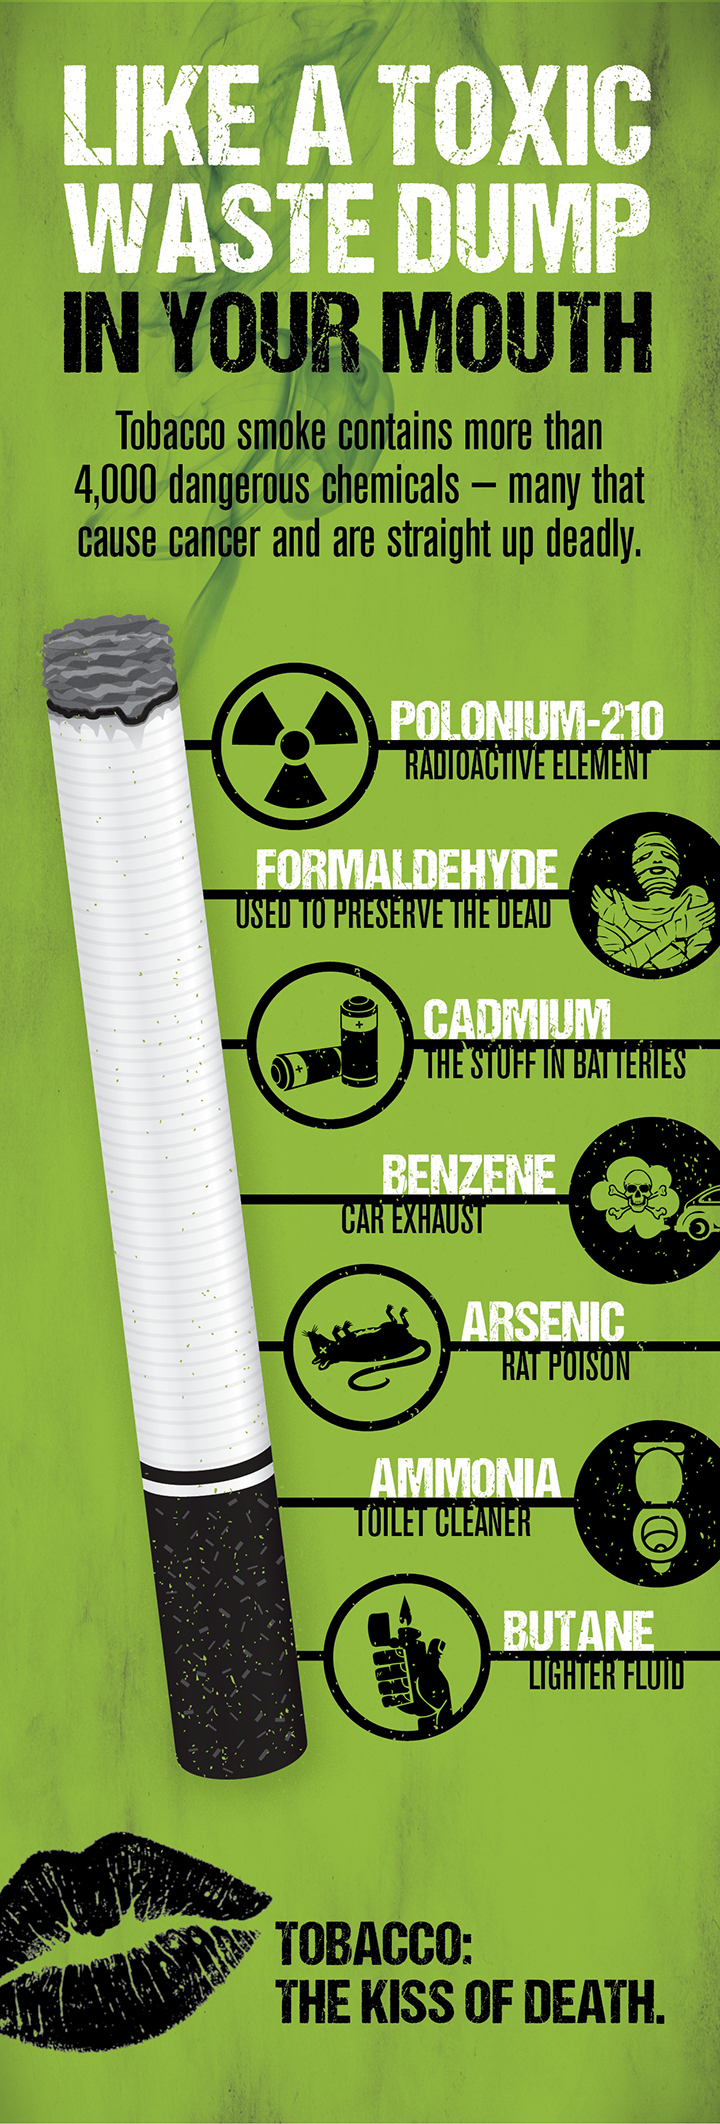 Cigarette smoke is like a toxic waste dump in your mouth